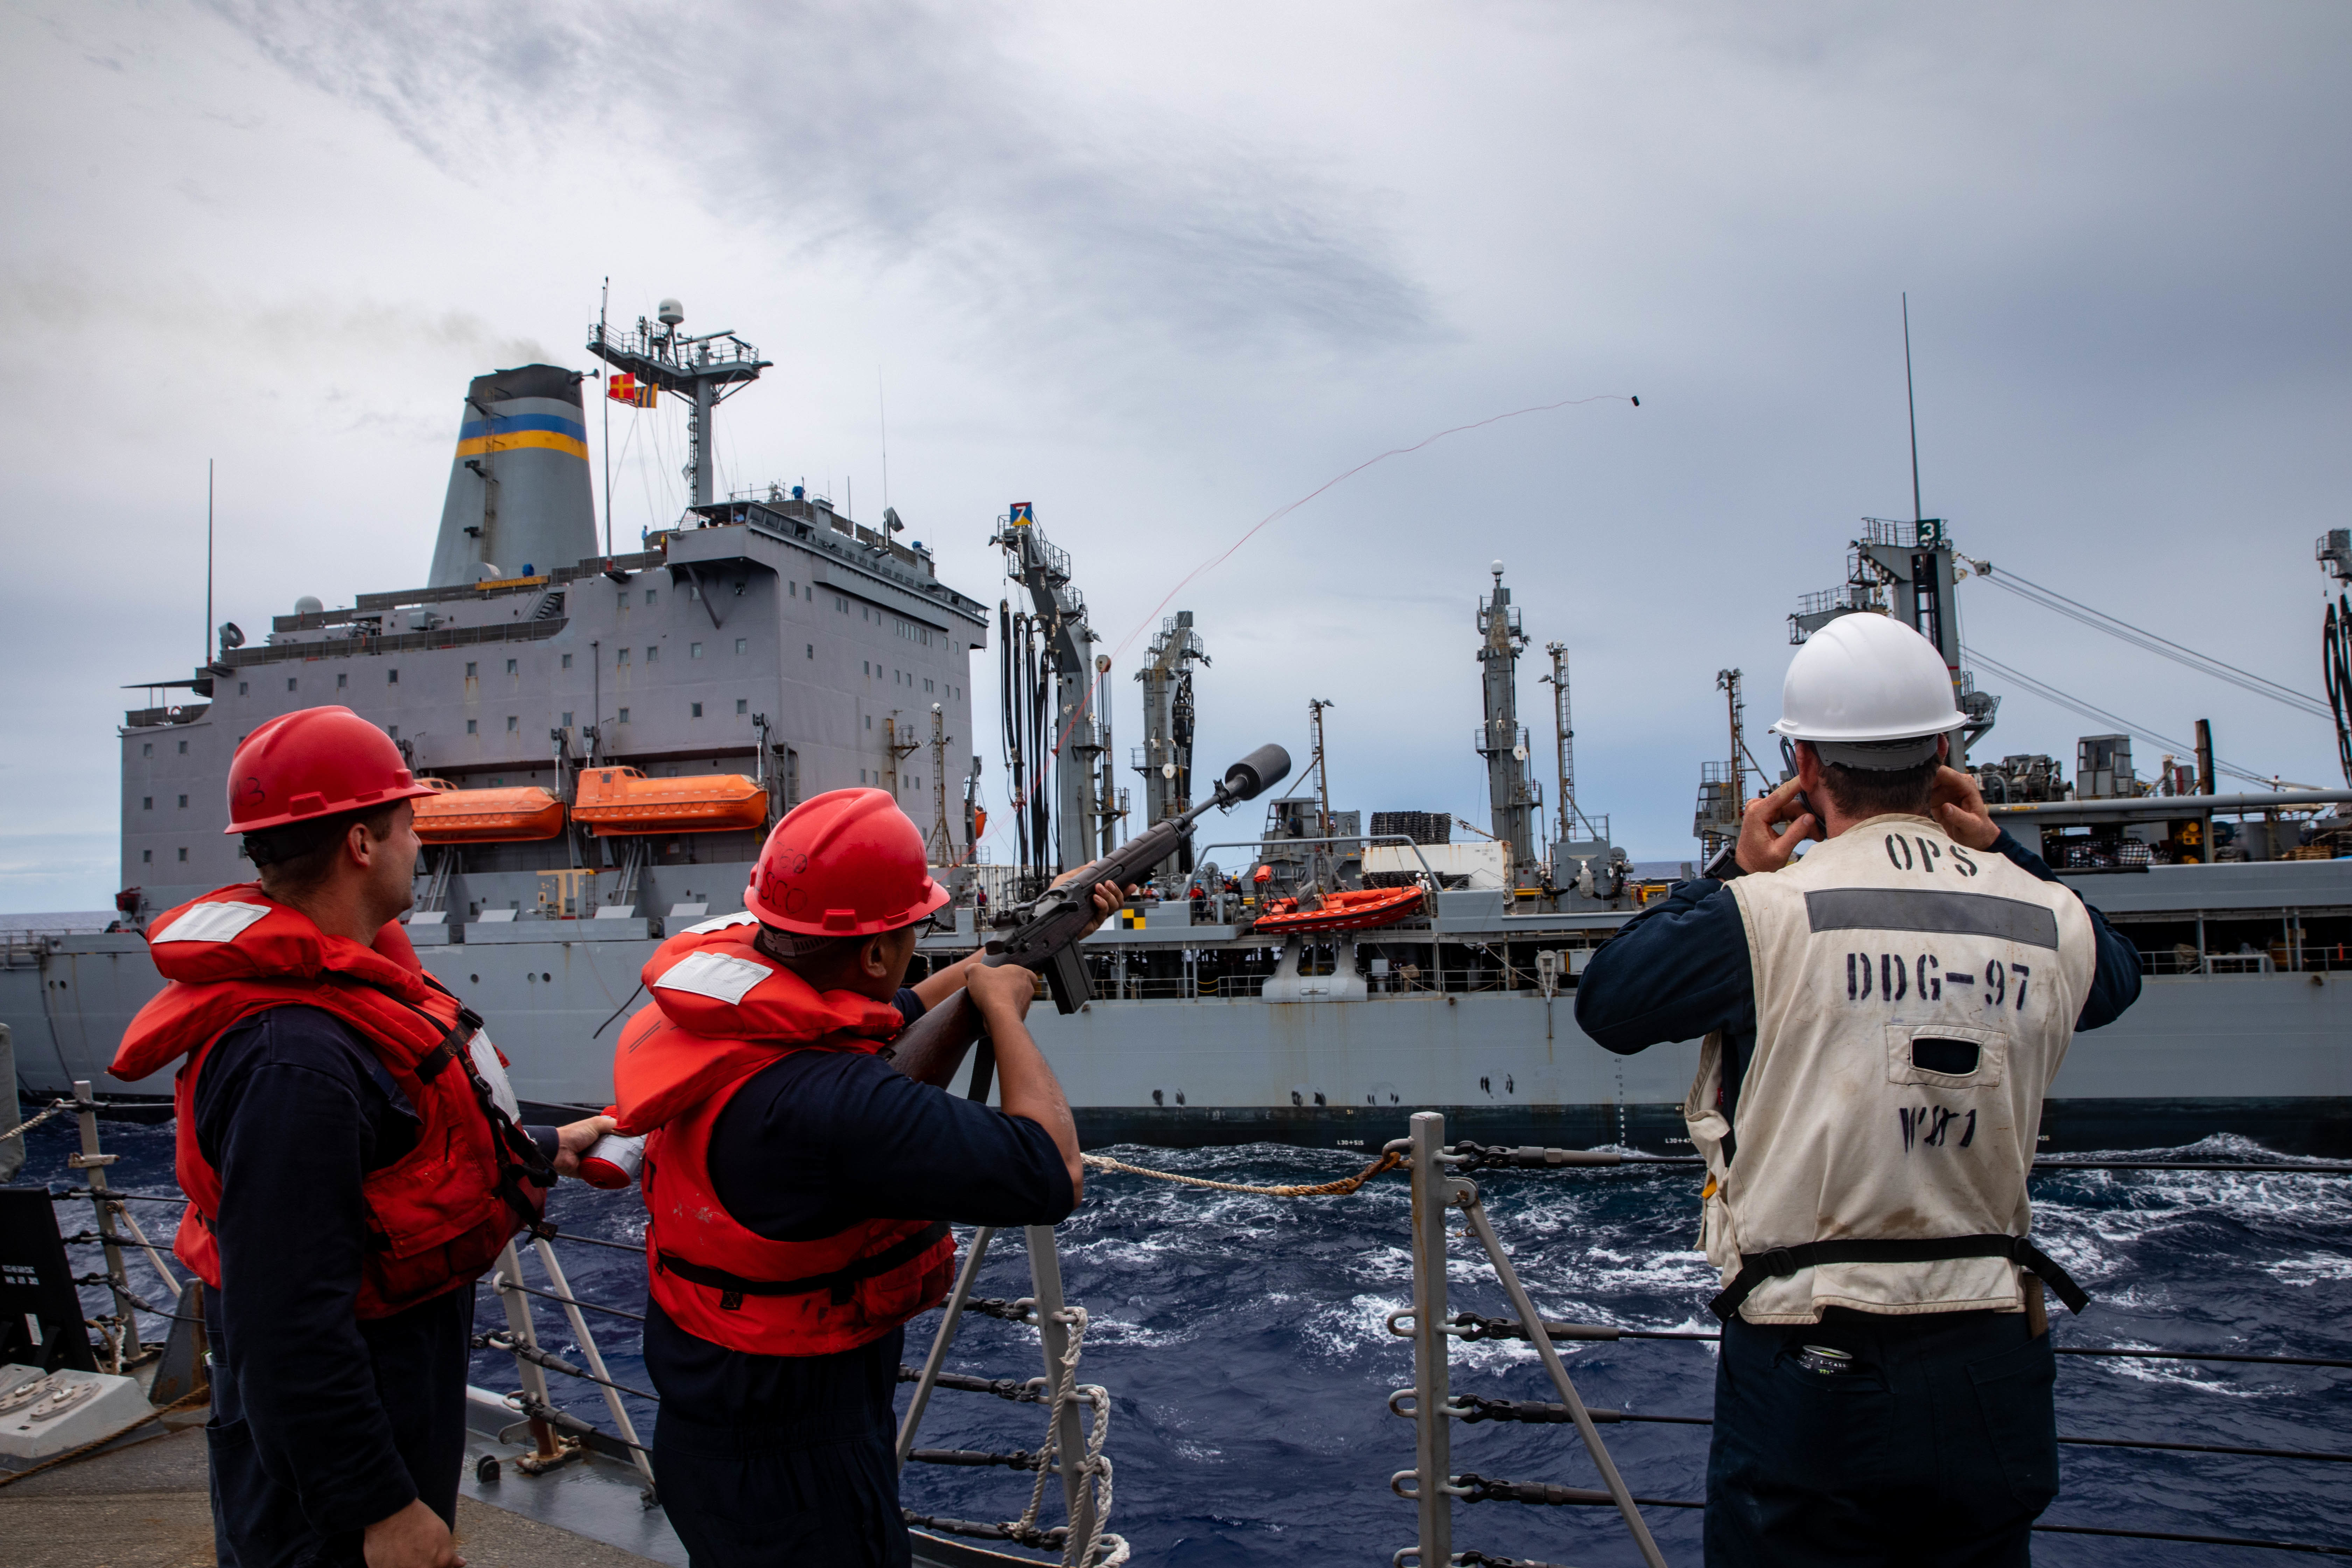 Gunner's Mate 2nd Class Andrew Escomiendo, from Vista, Calif., fires a shot line aboard the Arleigh Burke-class guided-missile destroyer USS Halsey (DDG 97) to the Henry J. Kaiser-class underway replenishment oiler USNS Rappahannock (T-AO-204) during a replenishment-at-sea aboard the Arleigh Burke-class guided-missile destroyer USS Halsey (DDG 97).